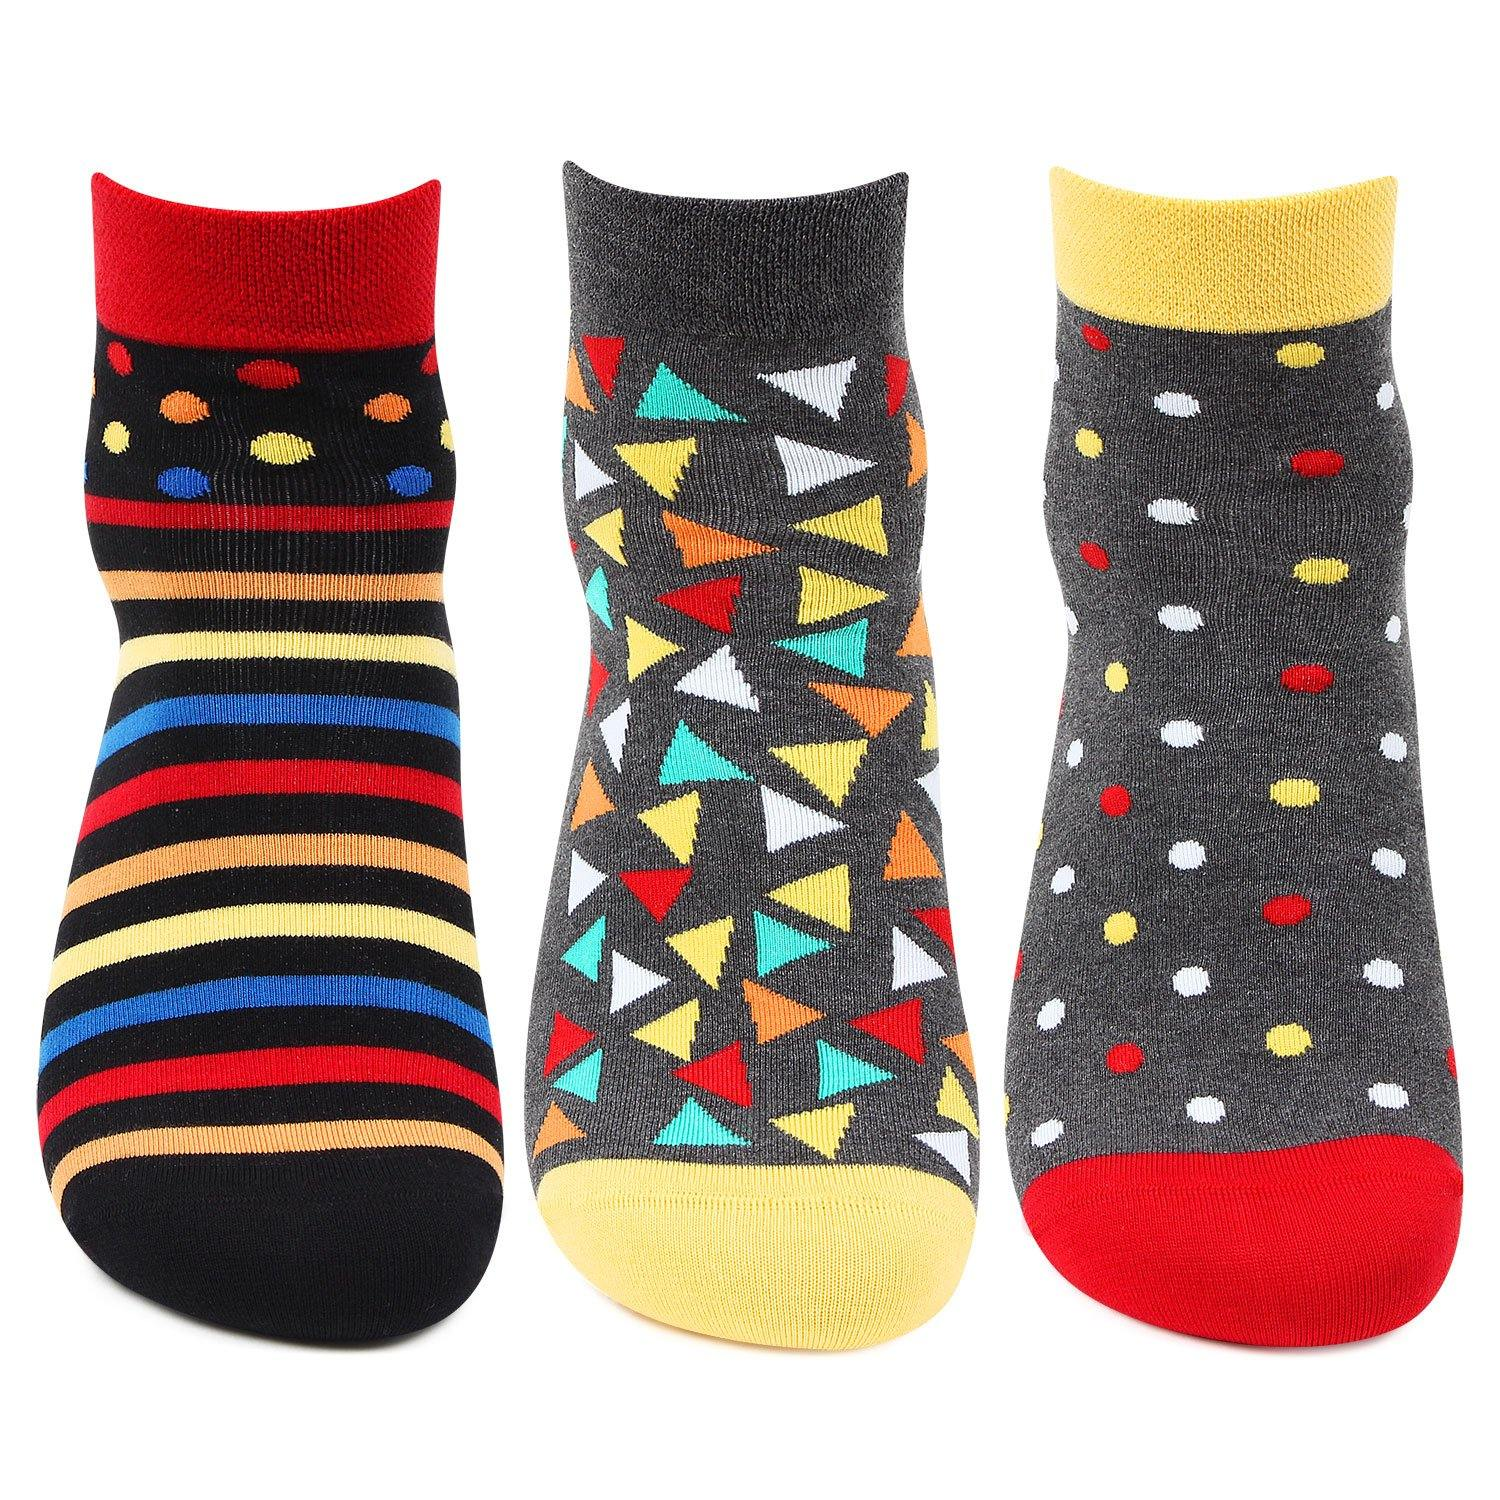 Men Multicolored Polka, Stripes, Geometrical Design Ankle Bold Socks-Pack of 3